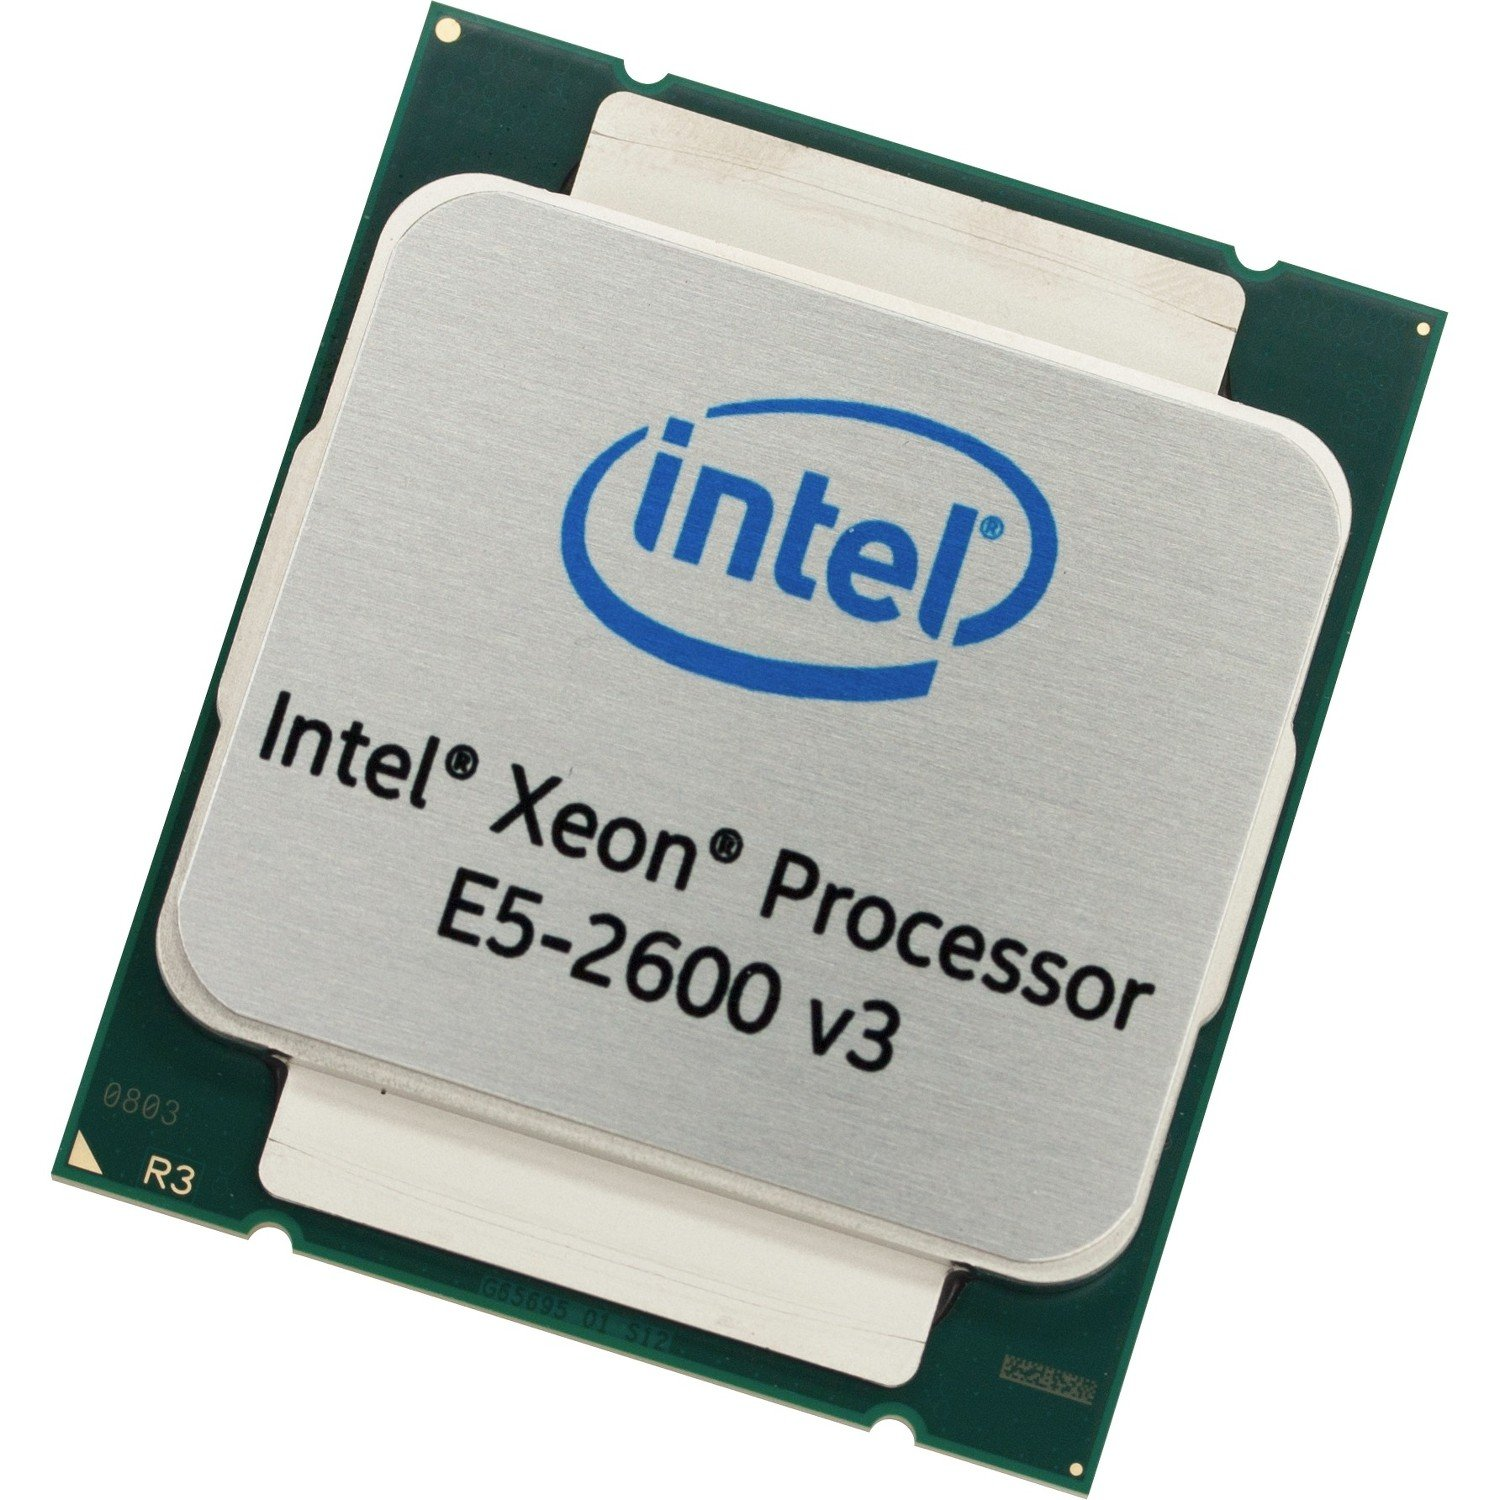 Amazon.com: Intel CM8064401610301 Xeon E5-2618LV3 - 2.3 GHz - 8-core - 16 threads - 20 MB cache - LGA2011-v3 Socket - OEM: Computers & Accessories